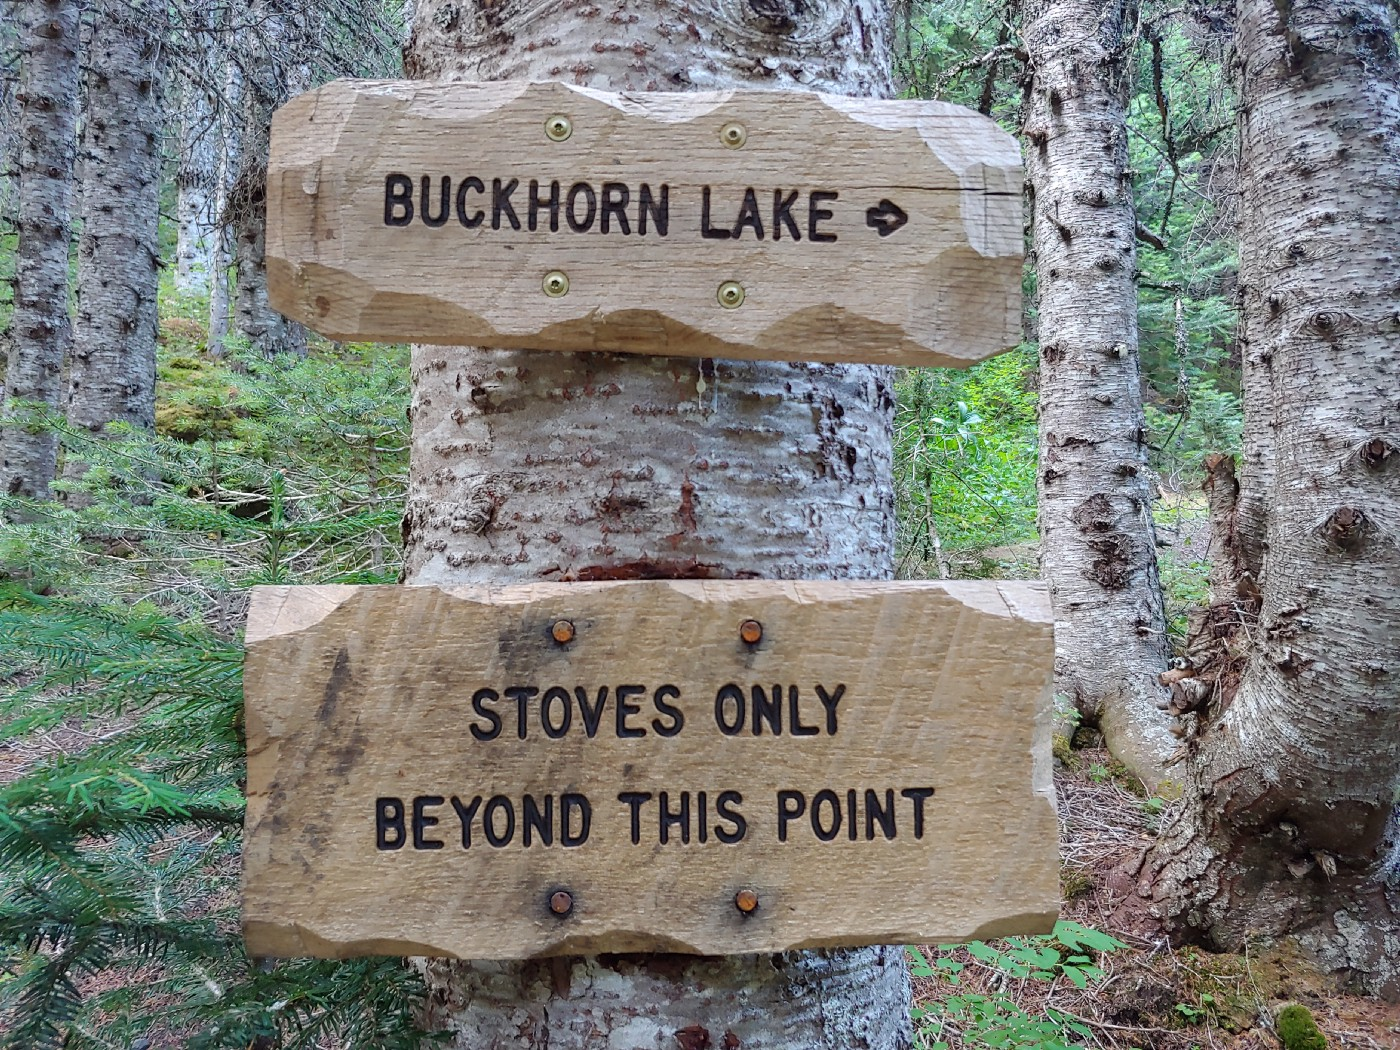 A trailside sign informs backpackers that campfires are not allowed beyond this point on Tubal Cain Trail in Olympic National Forest, but that camp stoves are allowed.